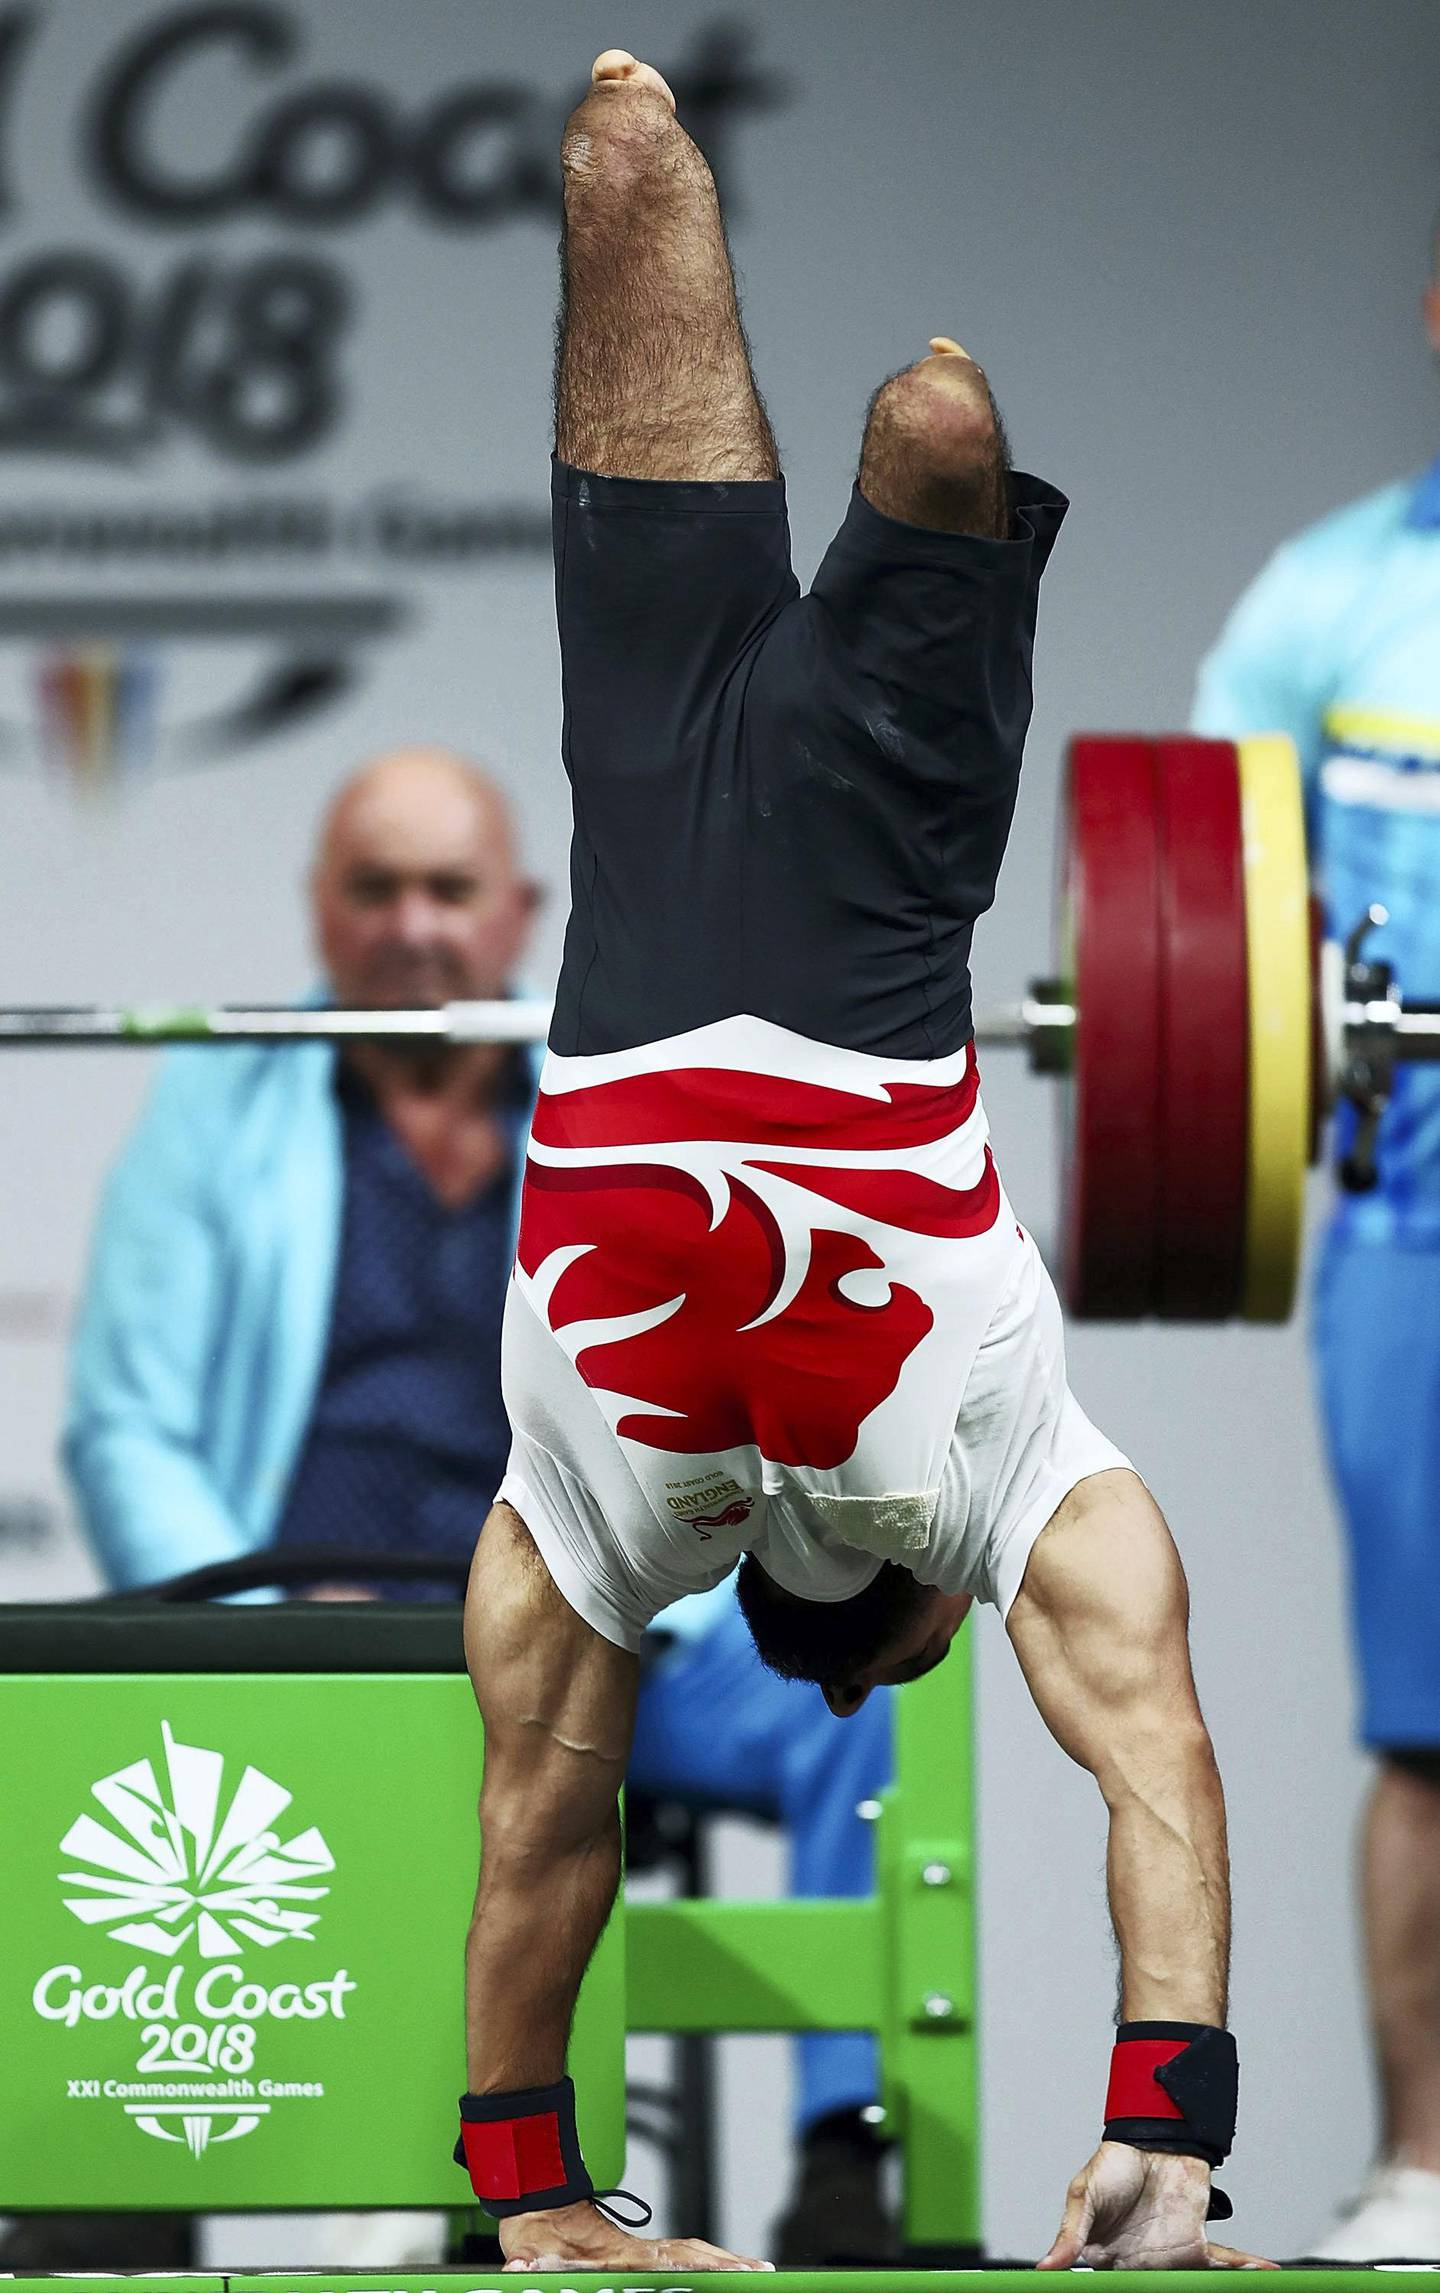 GOLD COAST, AUSTRALIA - APRIL 10:  Ali Jawad of England celebrates a lift in the Men's Lightweight Final during the Para Powerlifting on day six of the Gold Coast 2018 Commonwealth Games at Carrara Sports and Leisure Centre on April 10, 2018 on the Gold Coast, Australia.  (Photo by Mark Metcalfe/Getty Images)